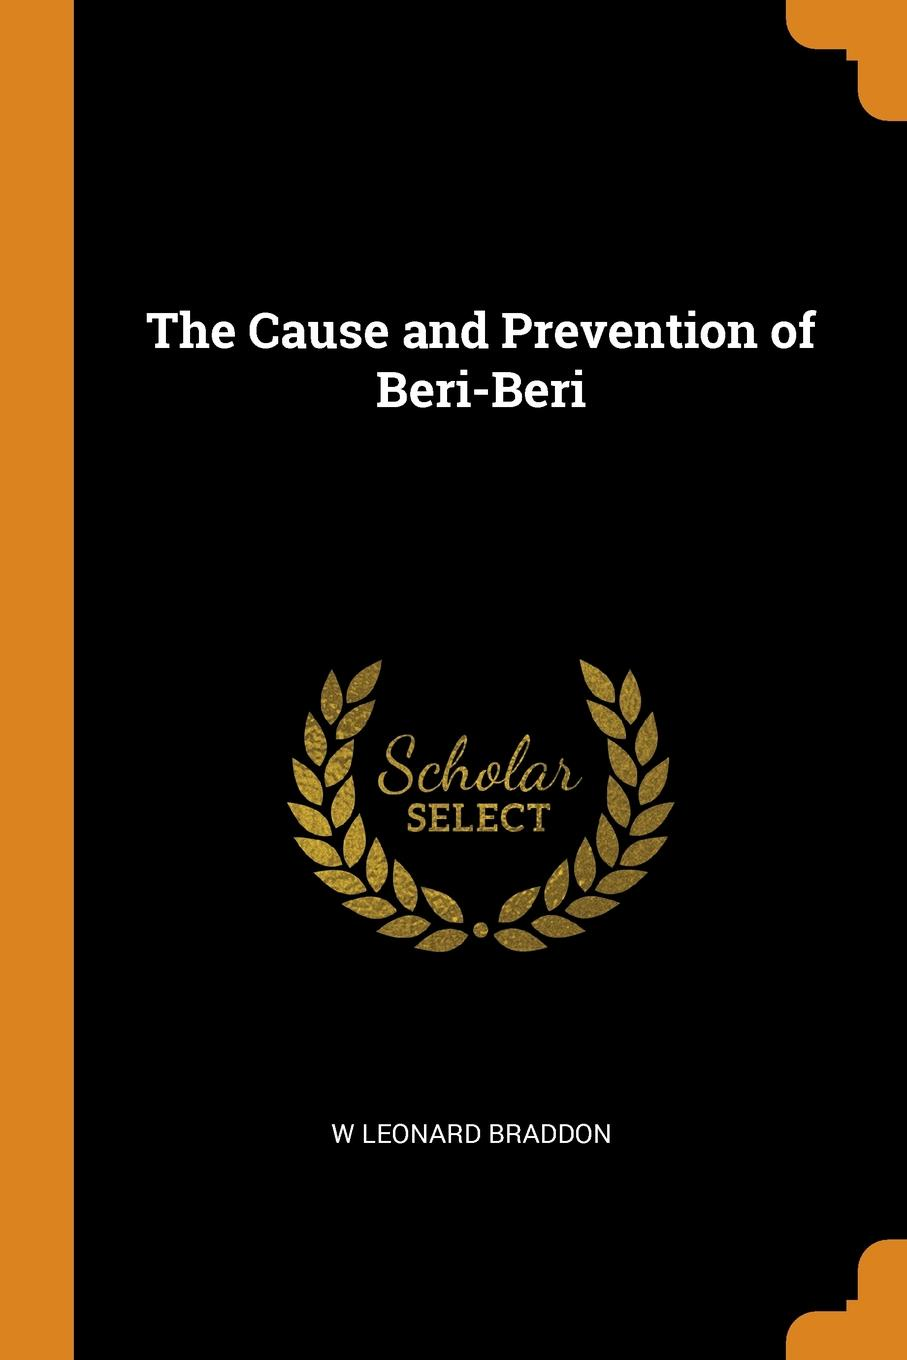 W Leonard Braddon The Cause and Prevention of Beri-Beri george leonard vose bridge disasters in america the cause and the remedy